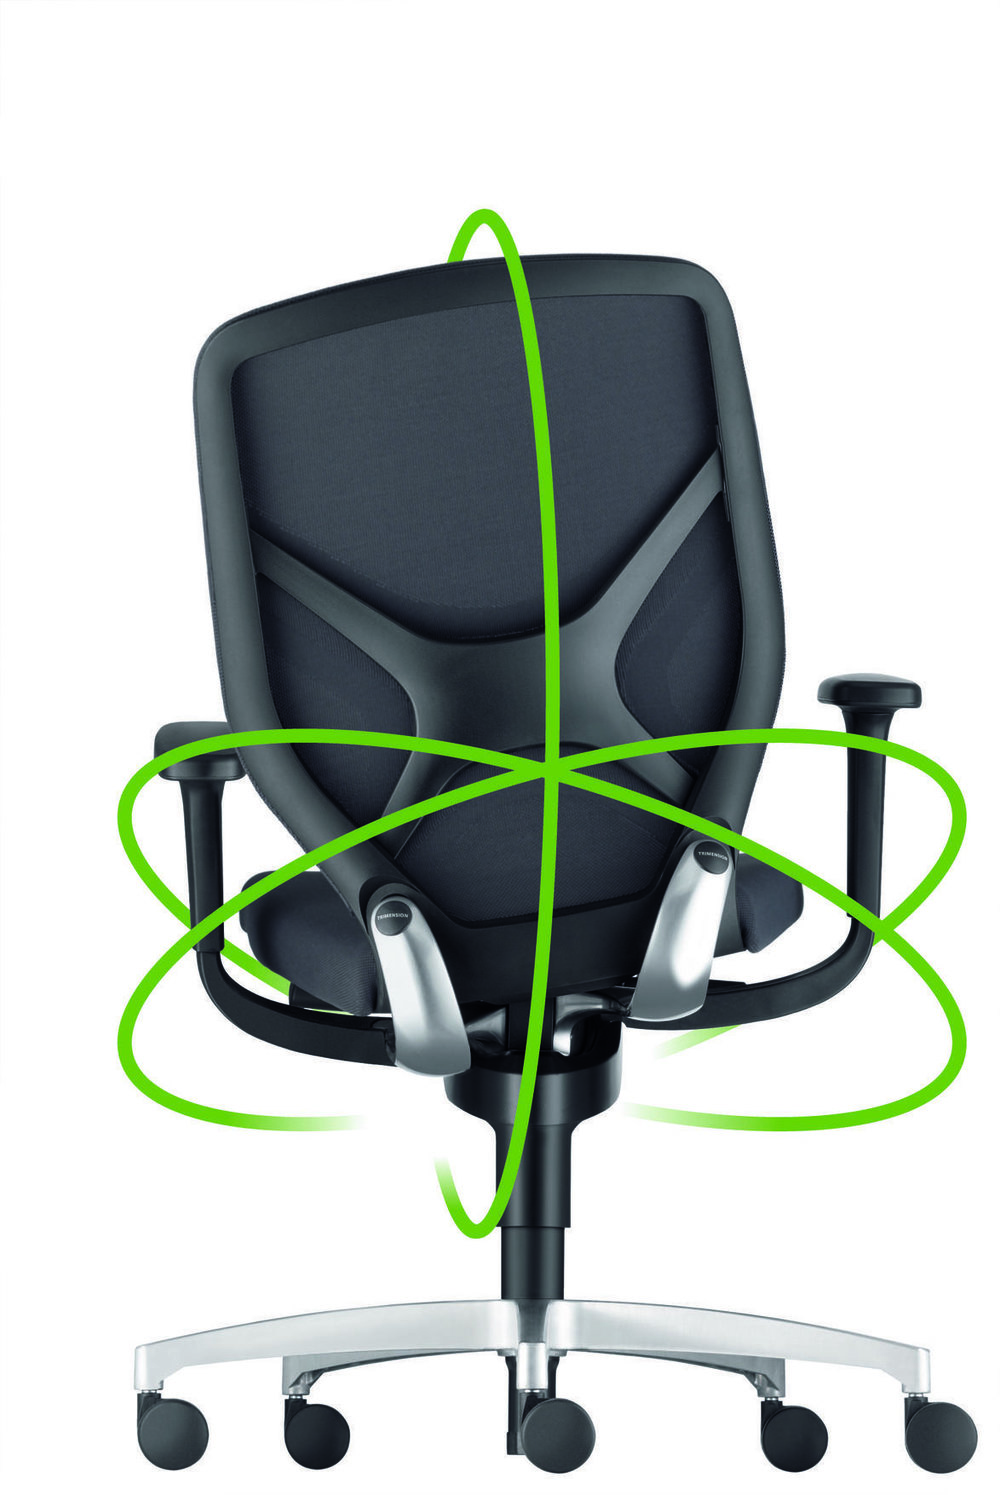 office furniture chairs glasgow.jpg